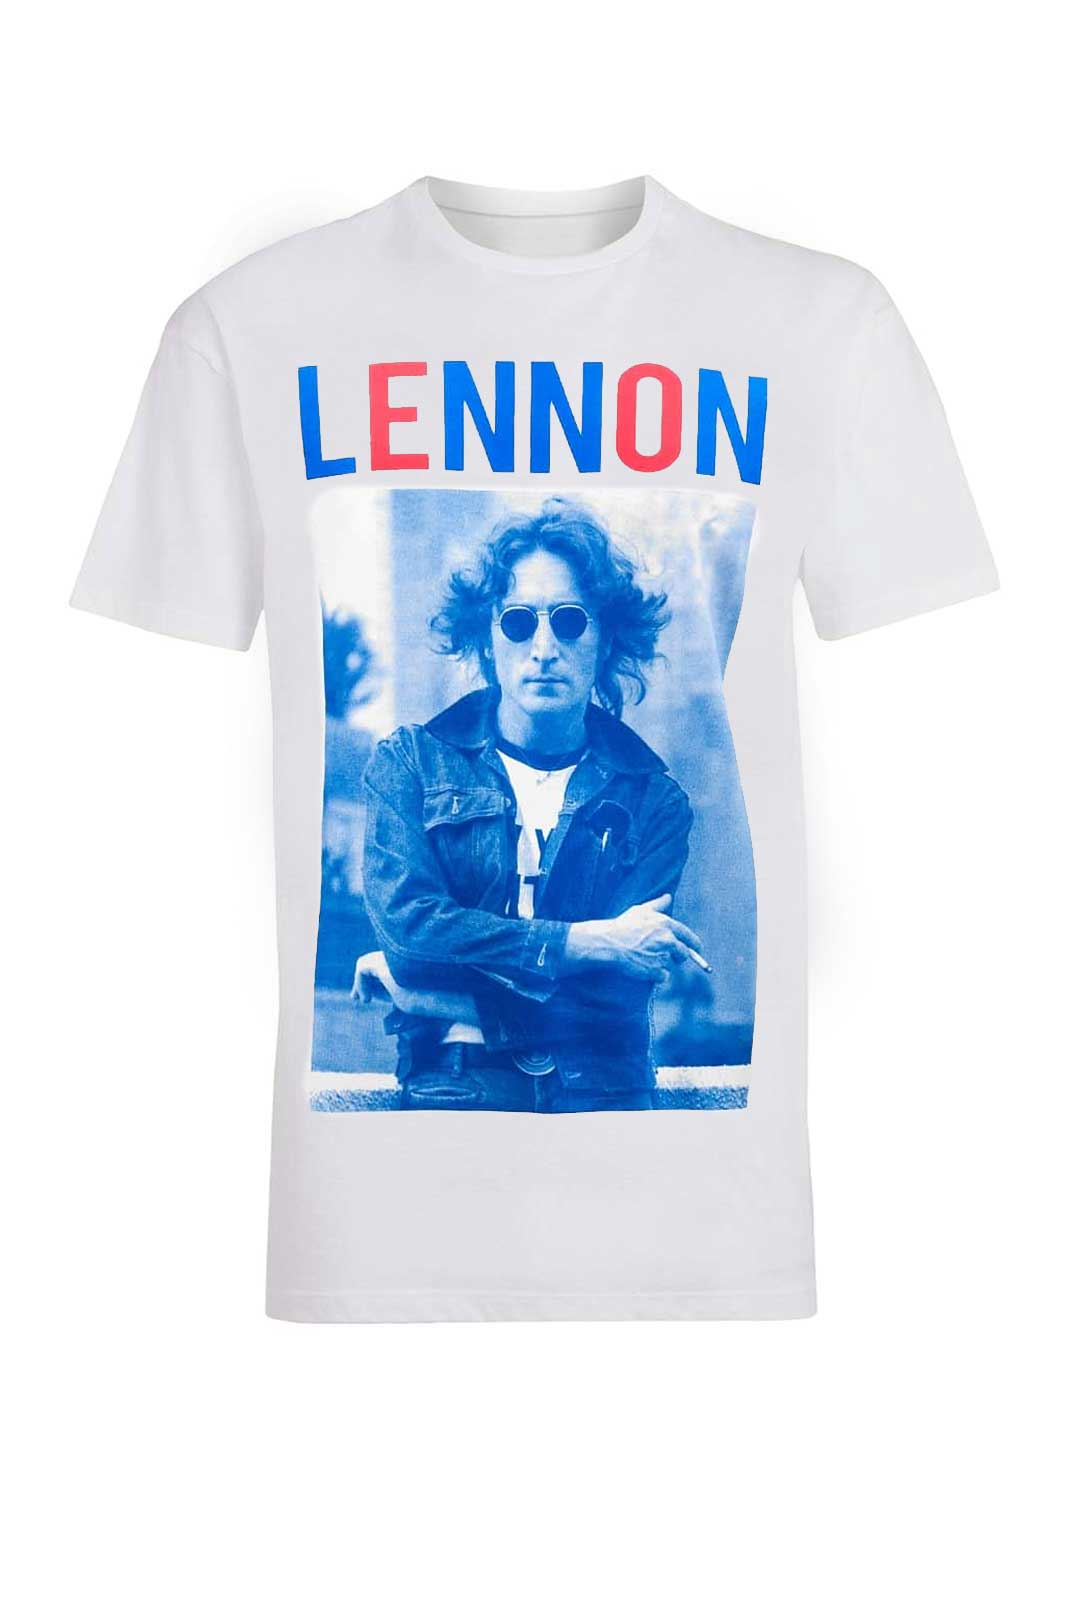 Tee John Lennon Bluered White